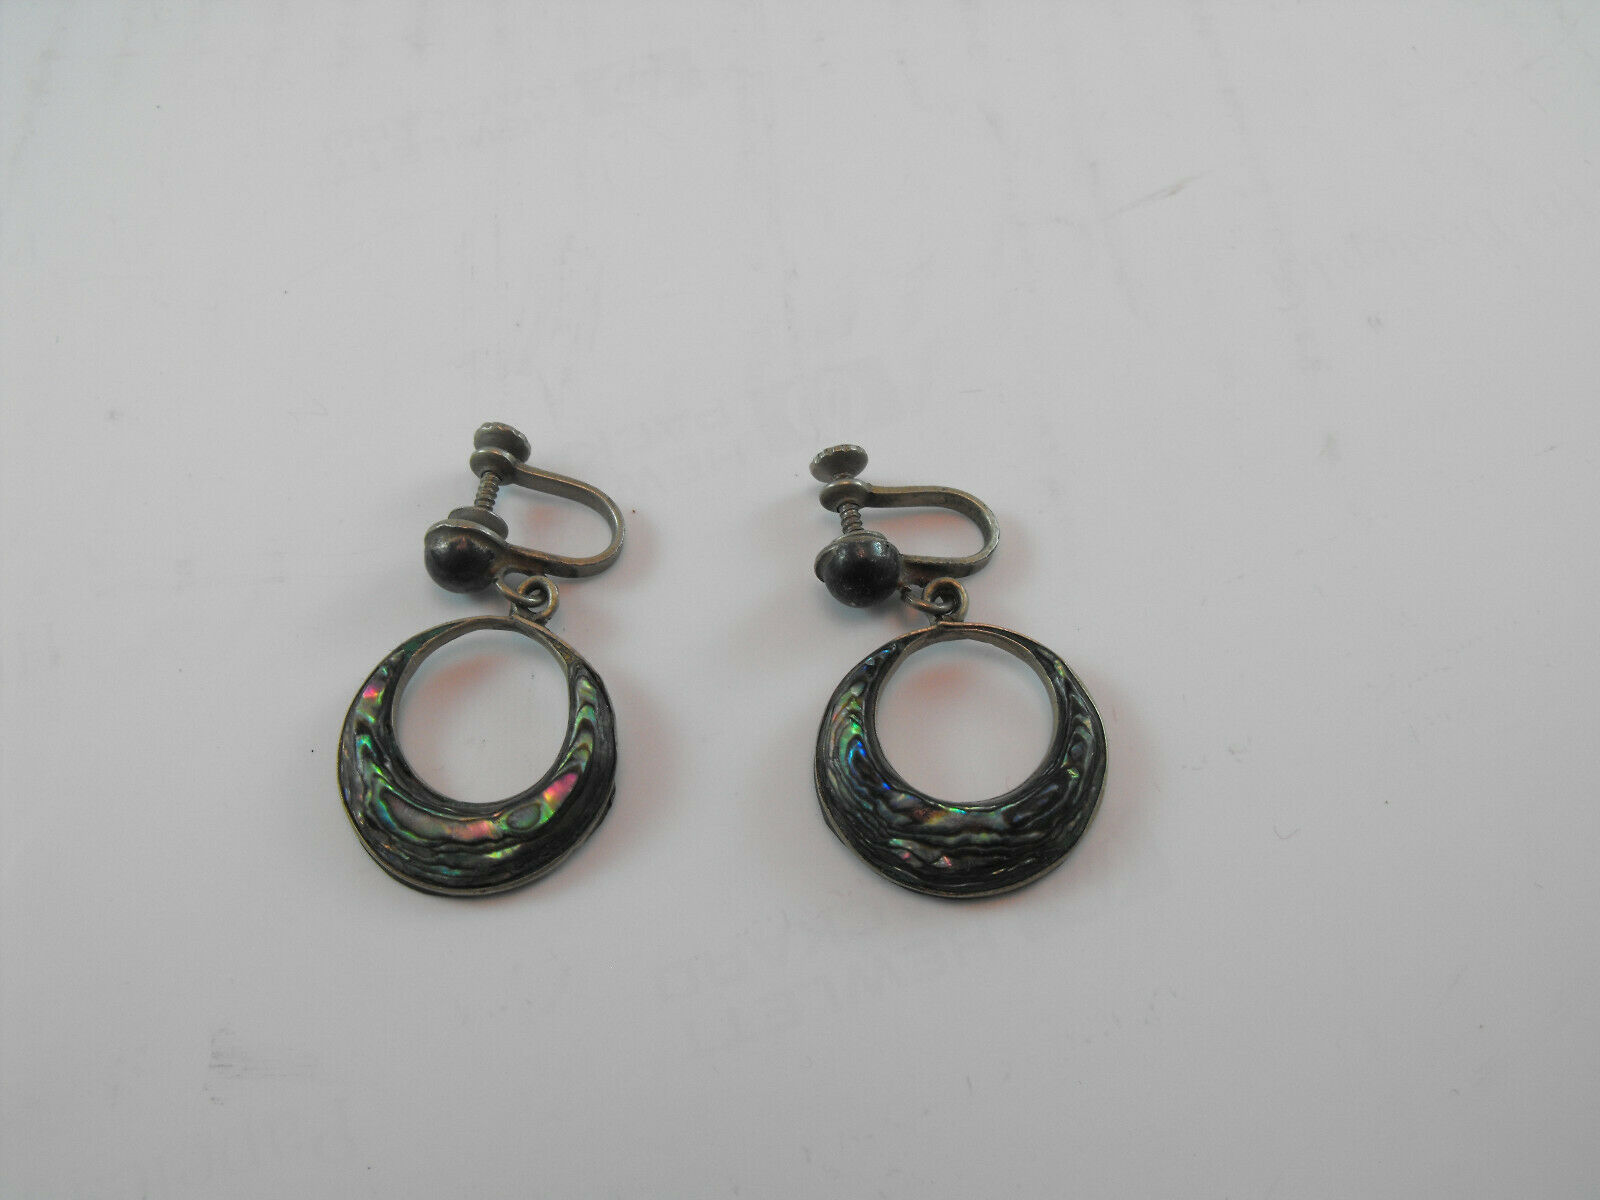 Mexico Sterling Abalone earrings vintage sterling silver abalone screw back modernist mid century Mexican jewelry earrings signed